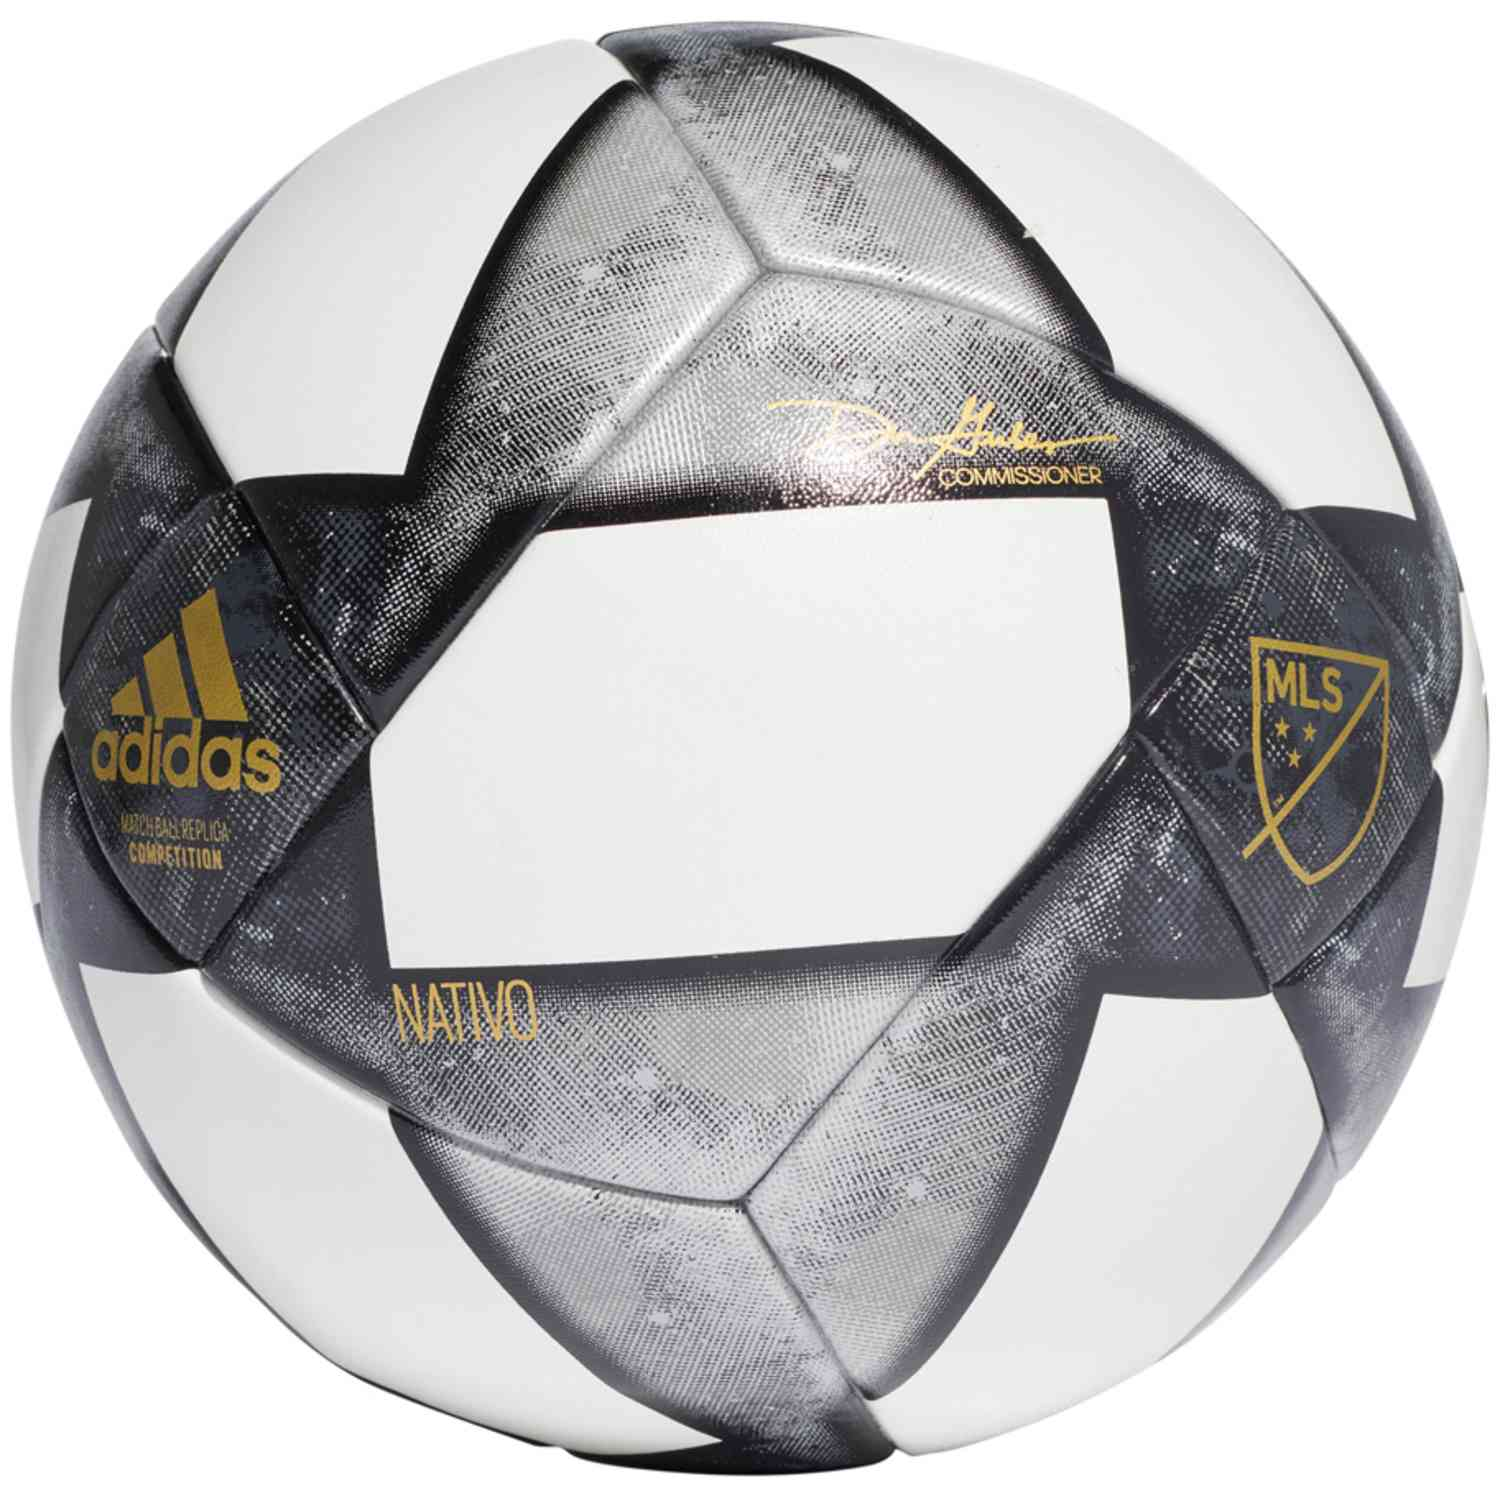 ddd42990b adidas MLS Nativo 19 Competition Match Soccer Ball - SoccerPro